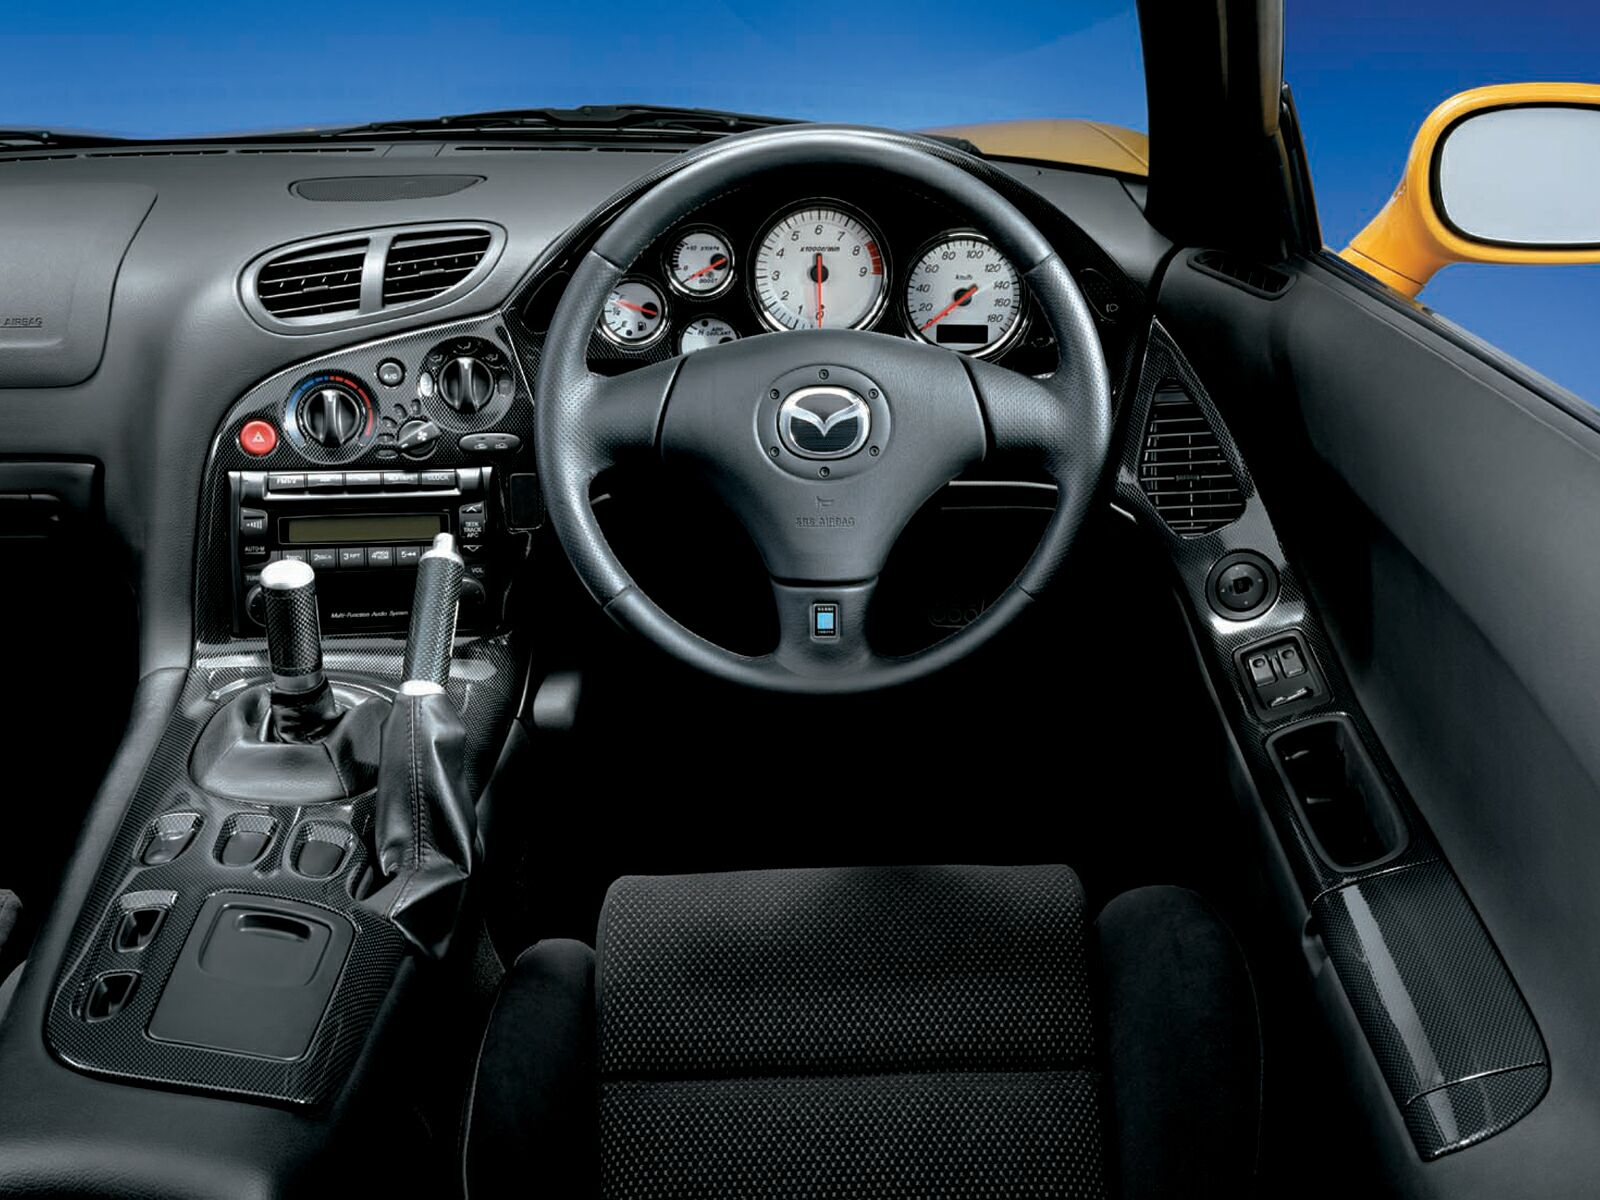 rx7 mazda and interiors on pinterest. Black Bedroom Furniture Sets. Home Design Ideas